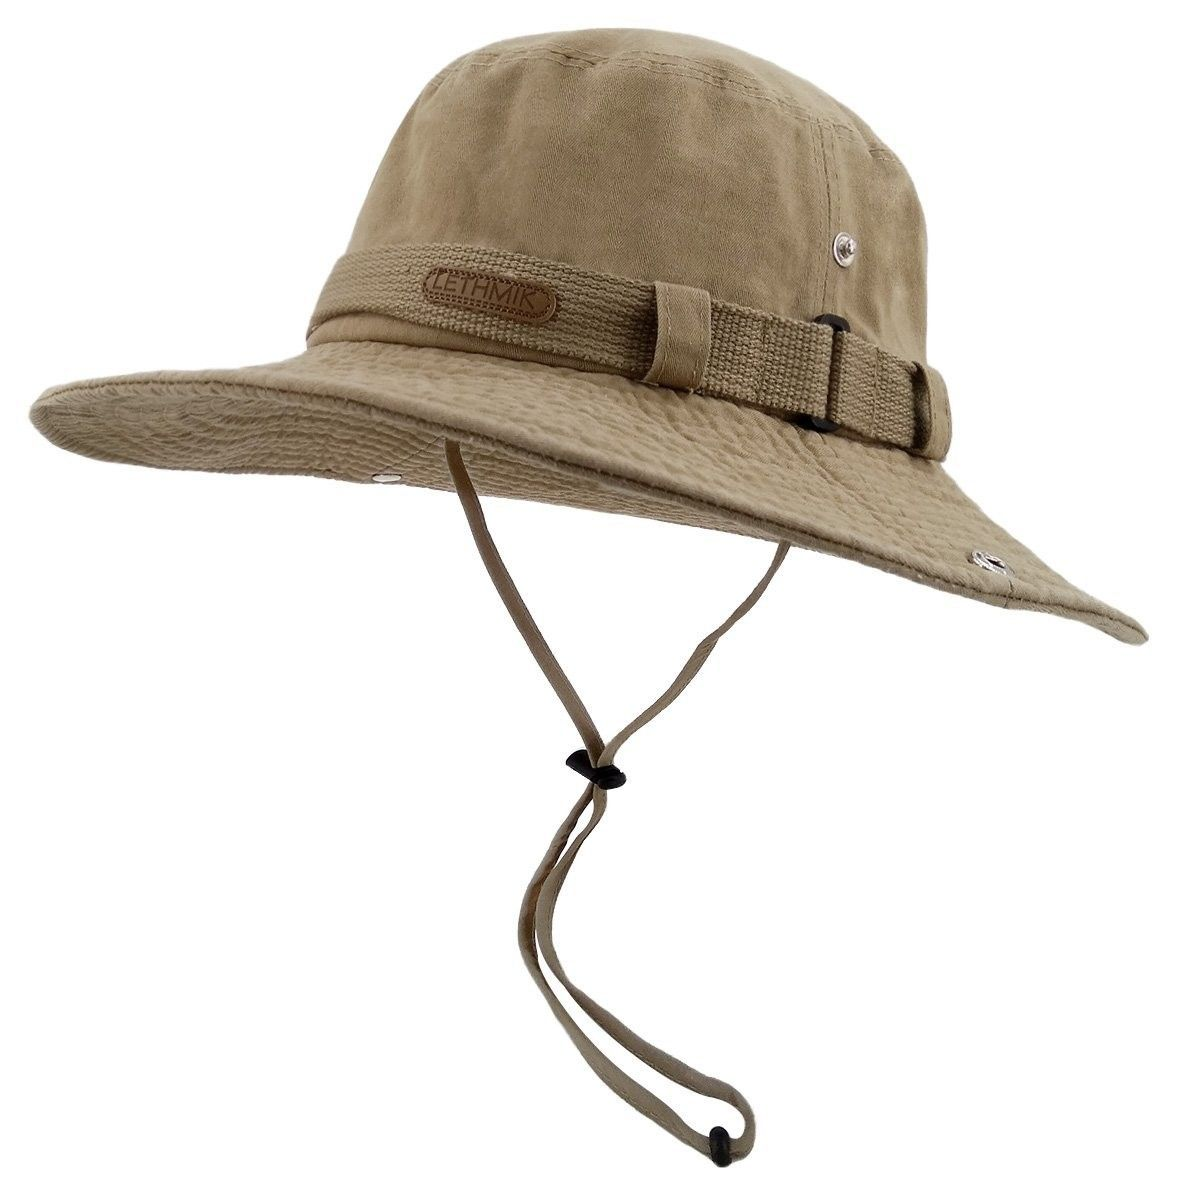 c85784670e1ff Fishing Sun Boonie Hat Summer UV Protection Cap Outdoor Hunting Hat - Khaki  (Washed Cotton